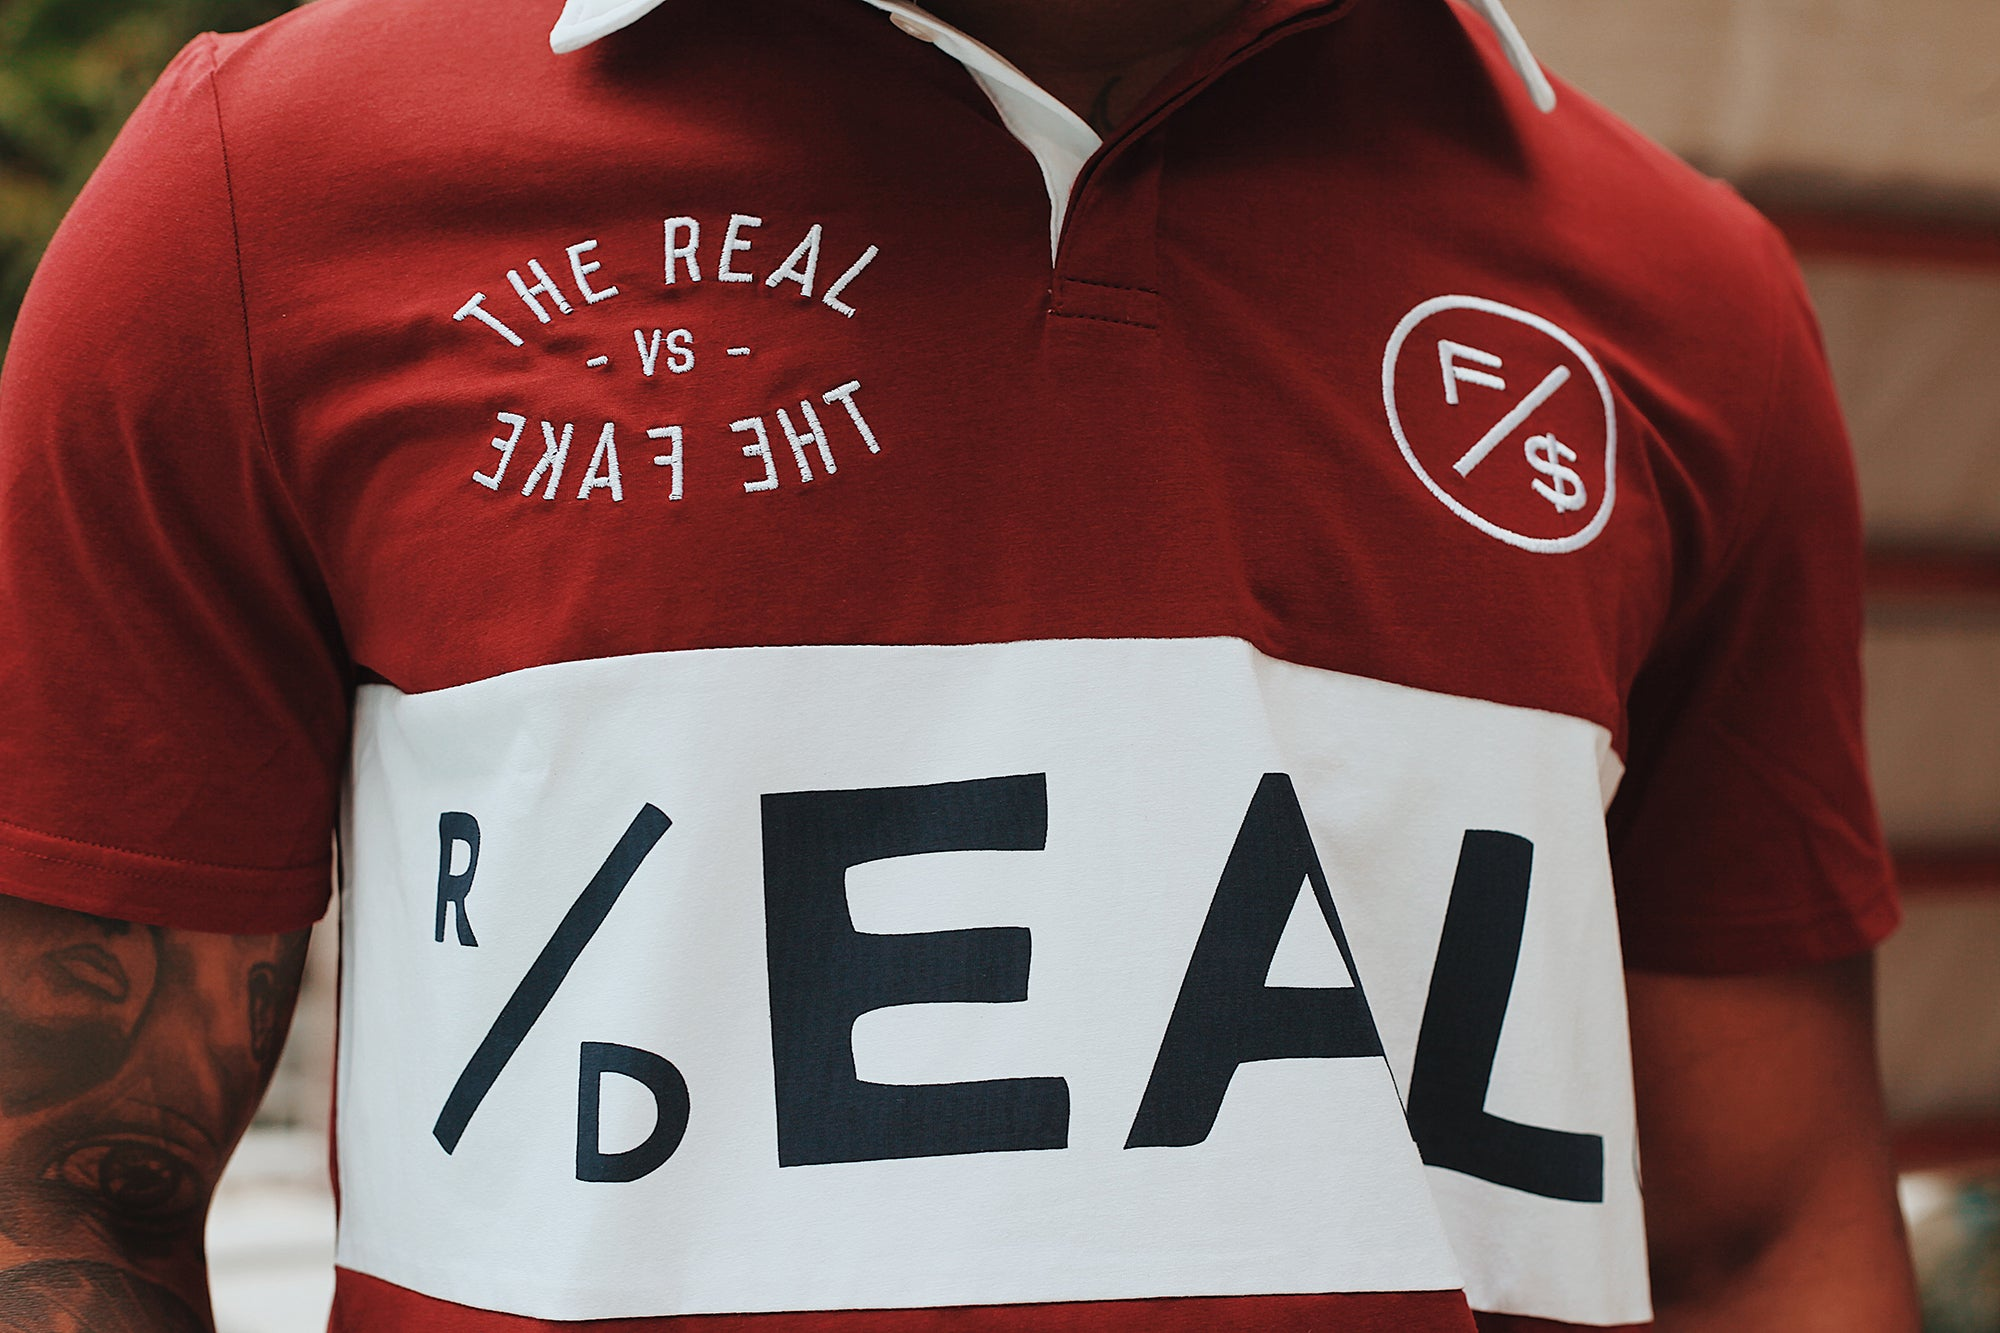 Real Deal Polo